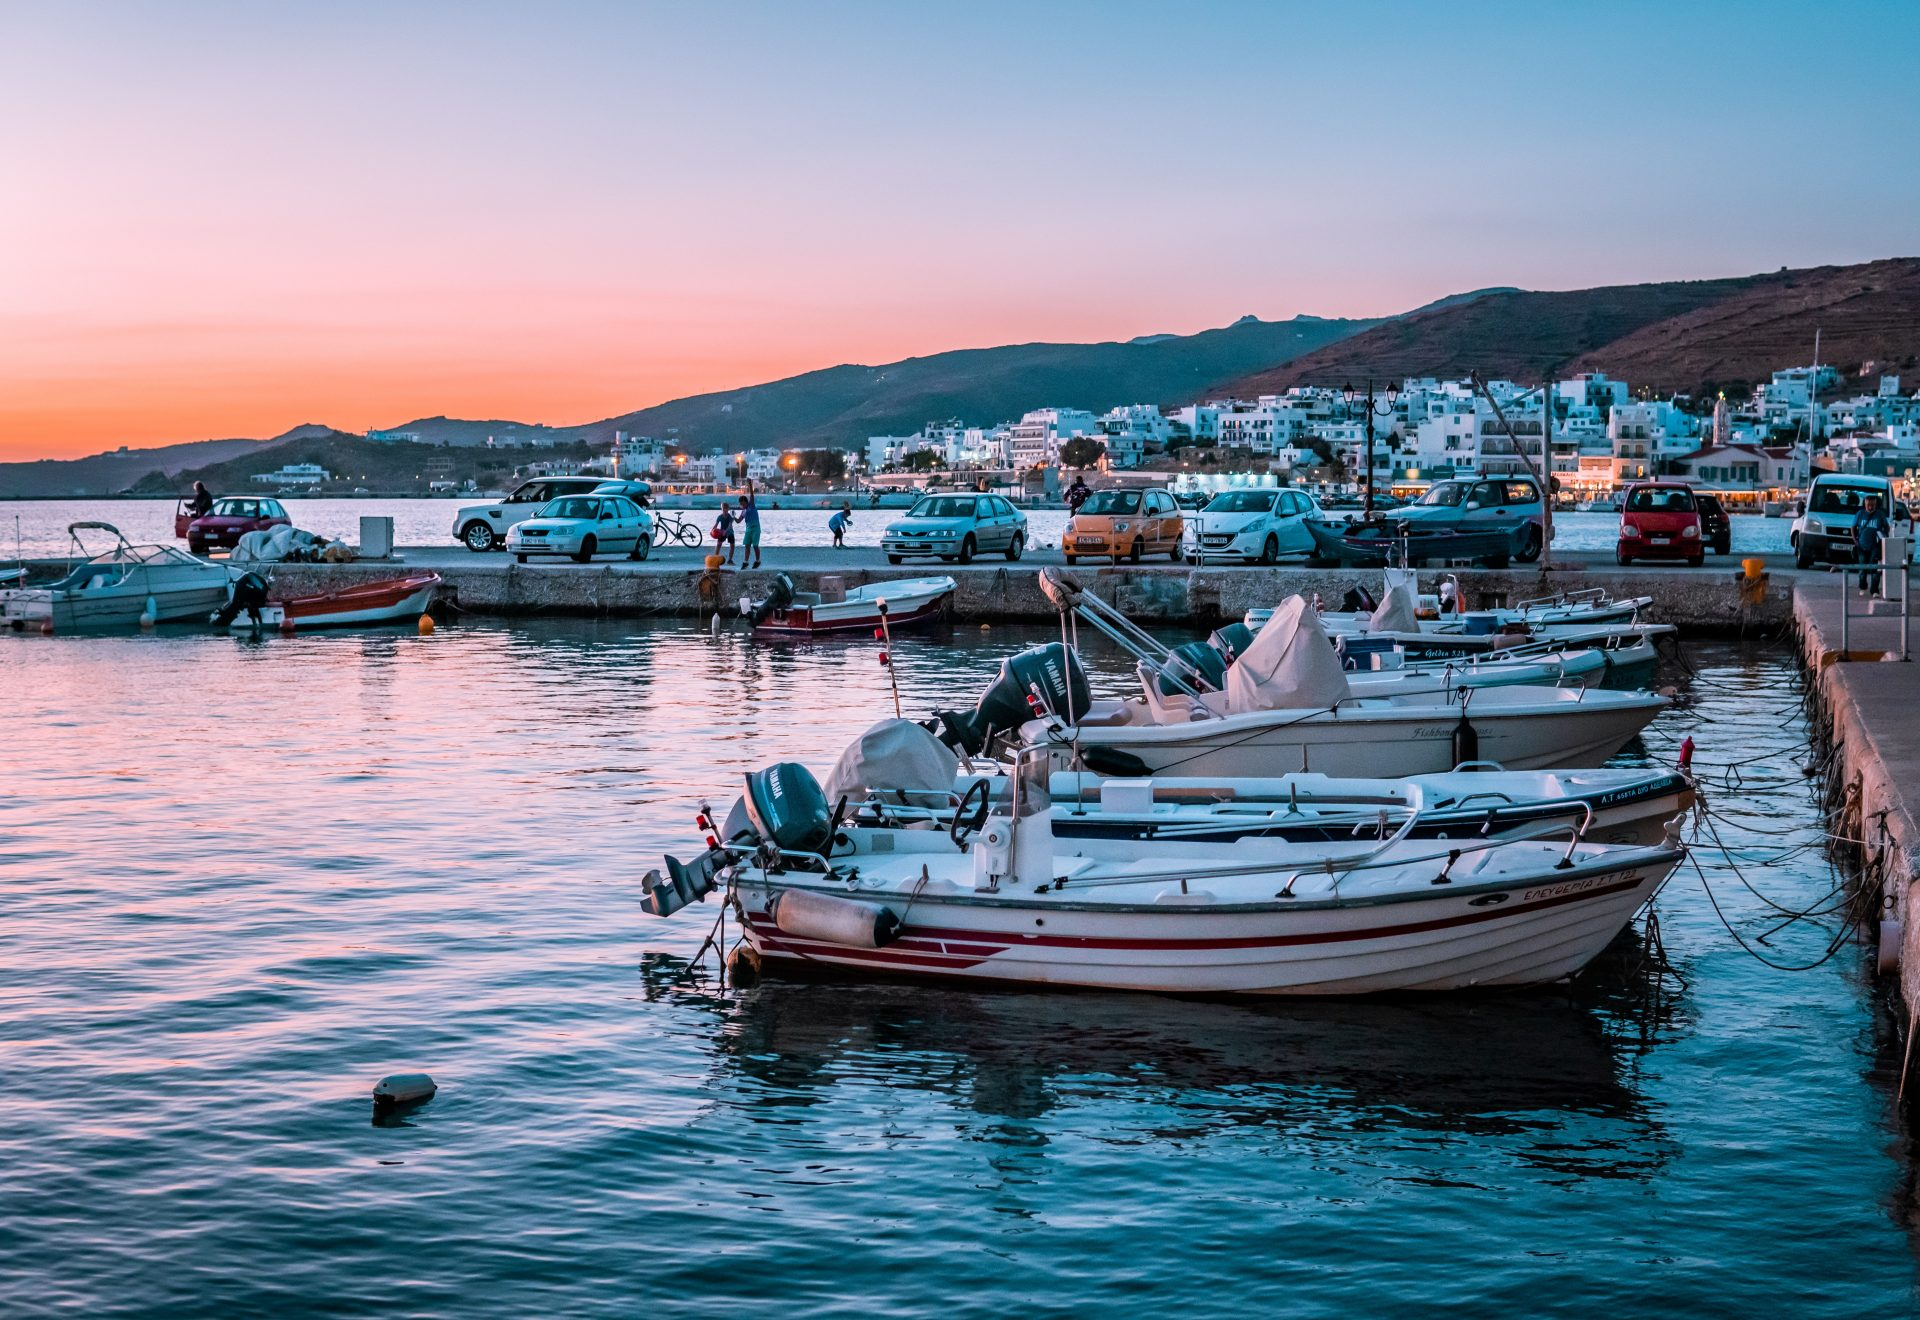 Digital Nomad Greece Guide - boats in Tinos at sunset